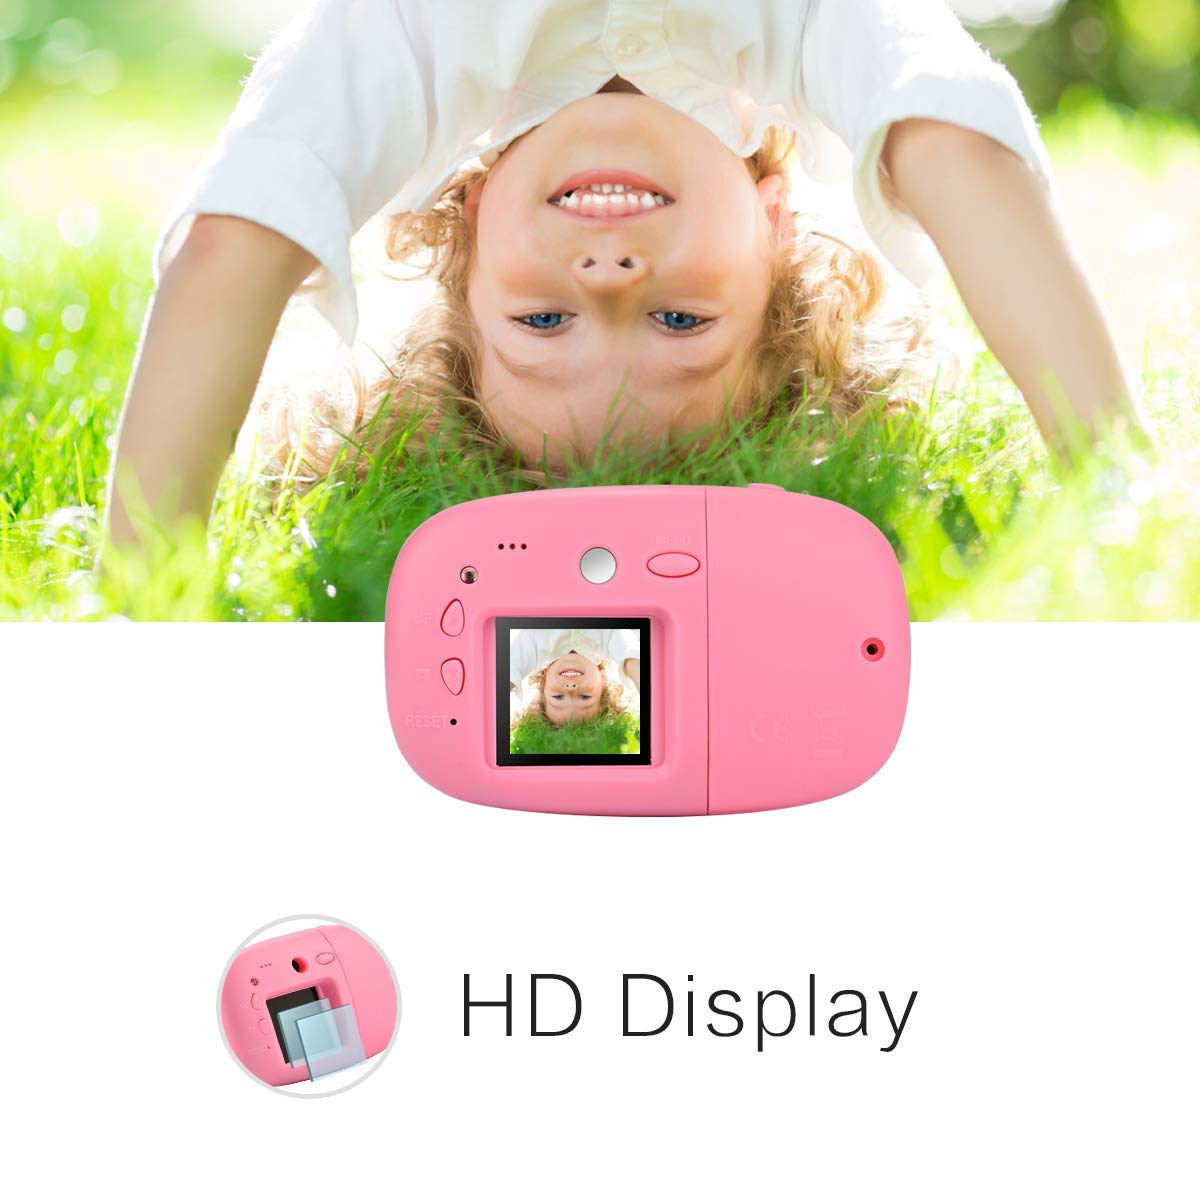 DishKooker 1.44 inch Digital Video Camera for Kids 1080P HD Sports Learn Mini Camera Camcorder for Boys Girls Pink by DishKooker (Image #5)